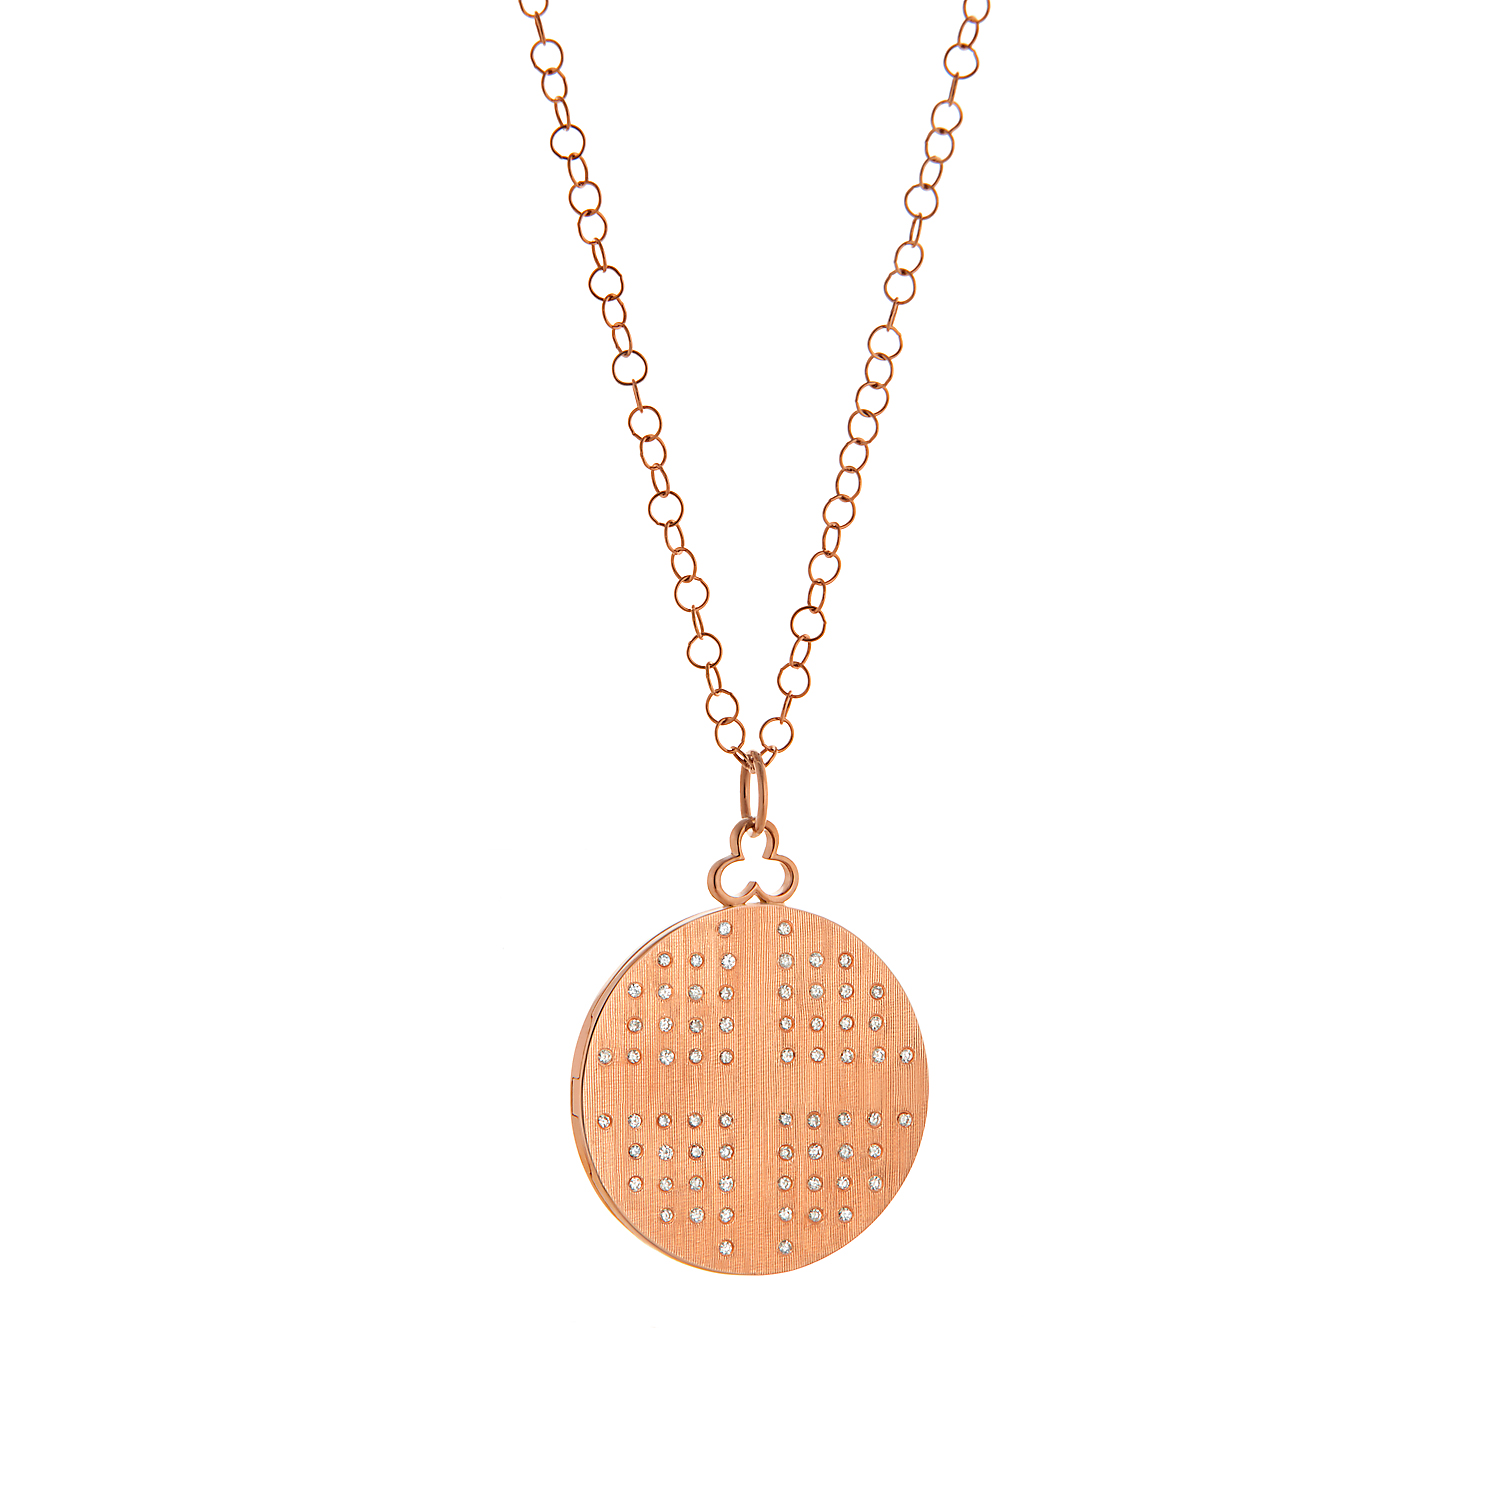 18K Rose Gold, Large, Florentine Finish